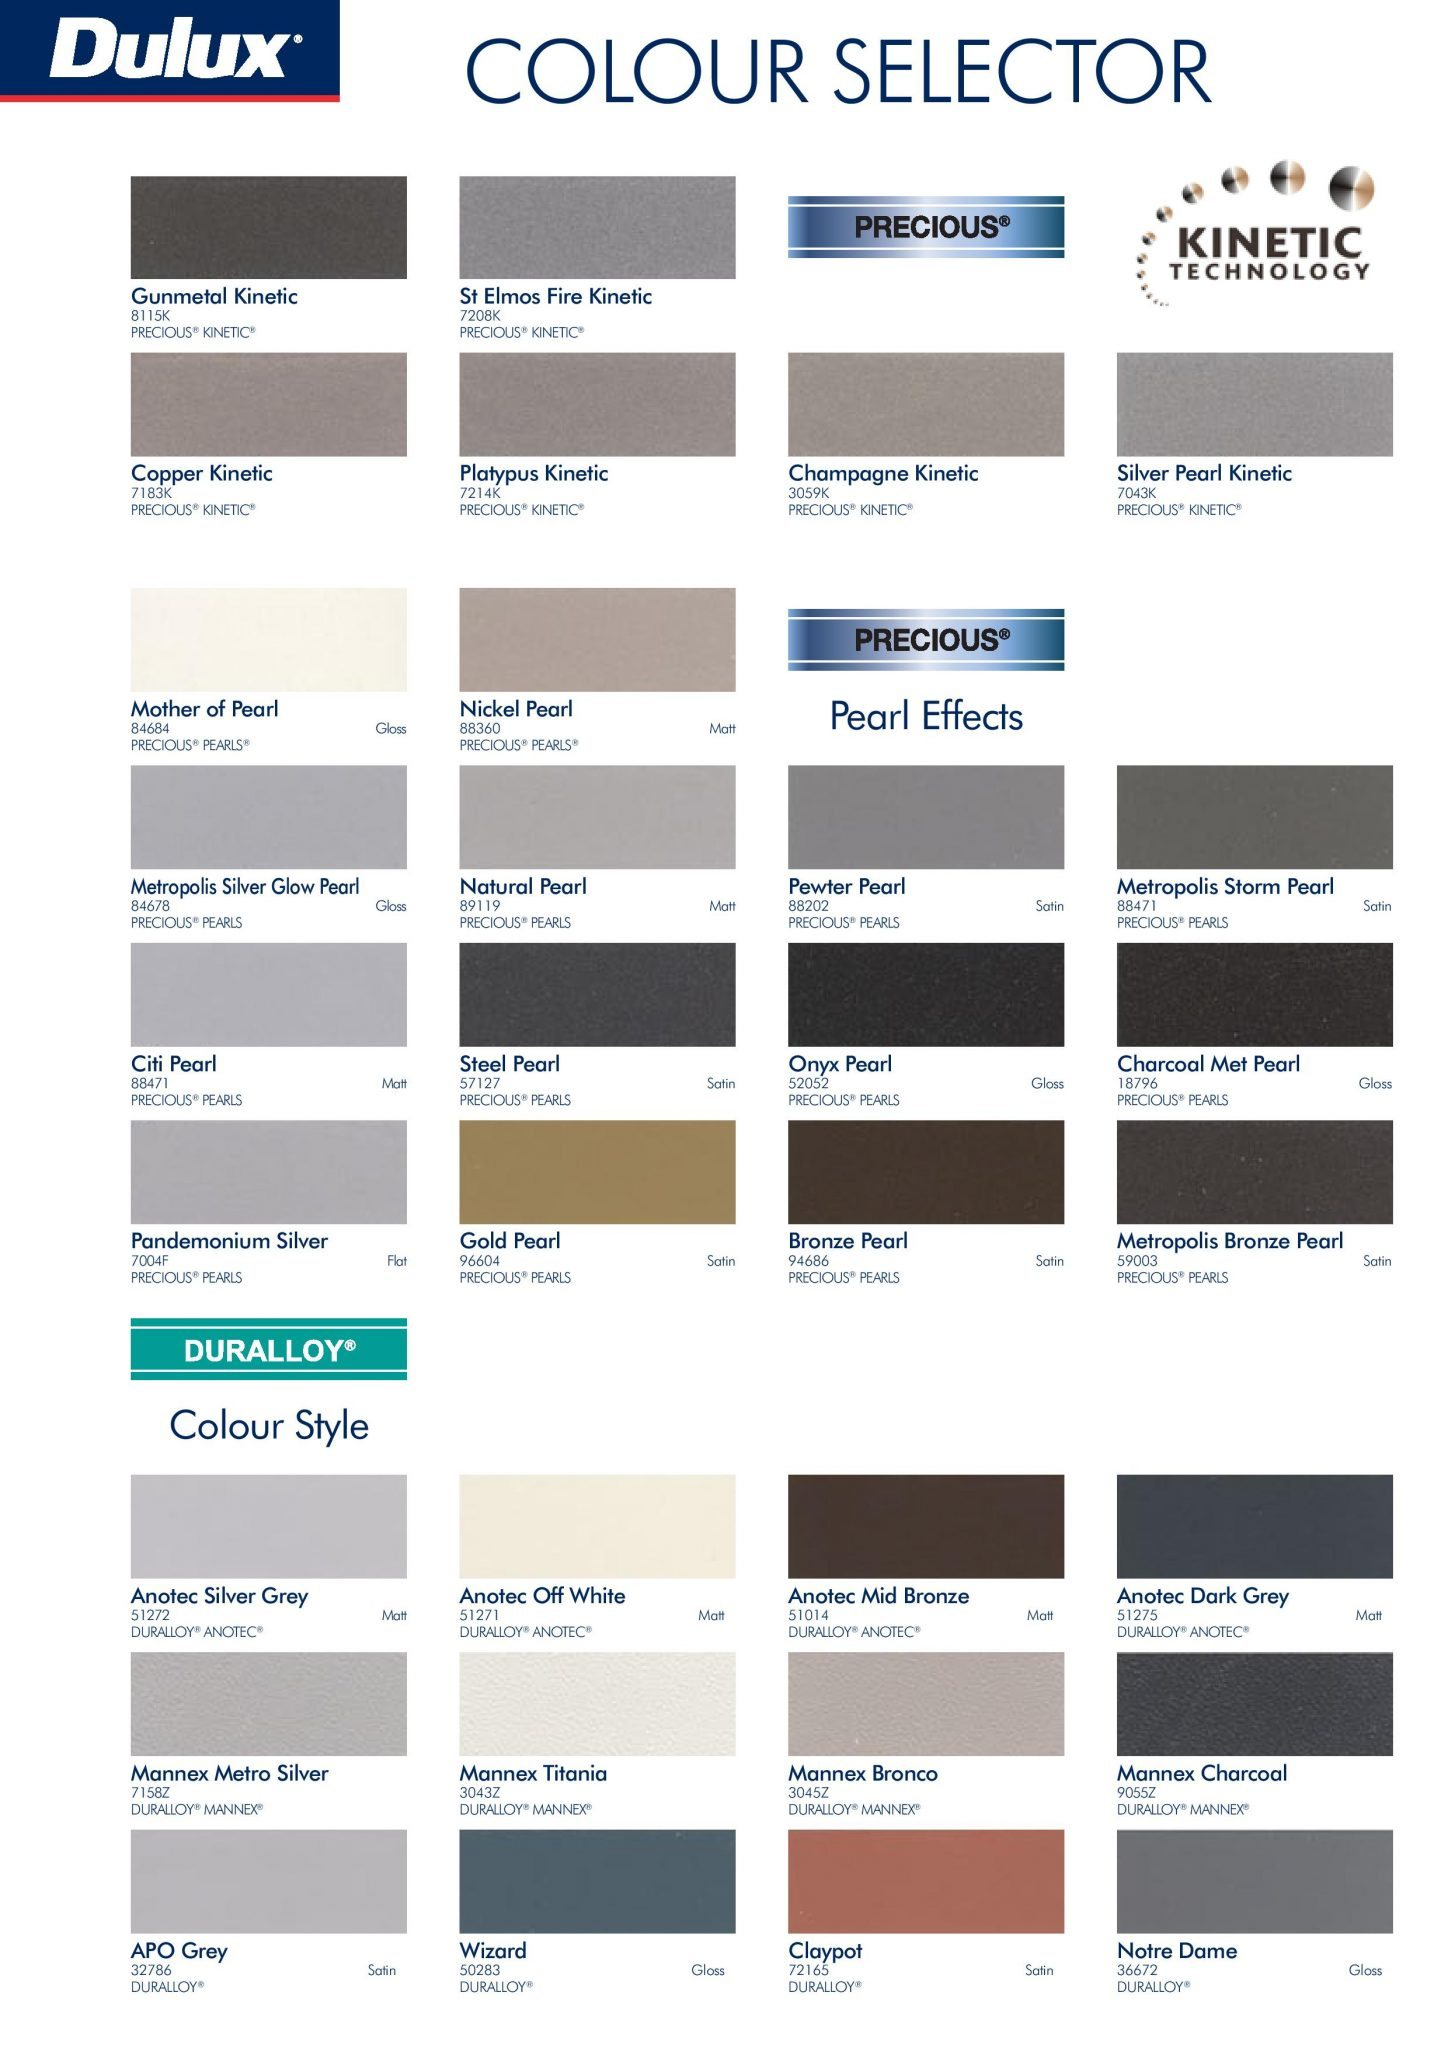 Dulux Color Selector Page Of Brochure With Different Color Shades